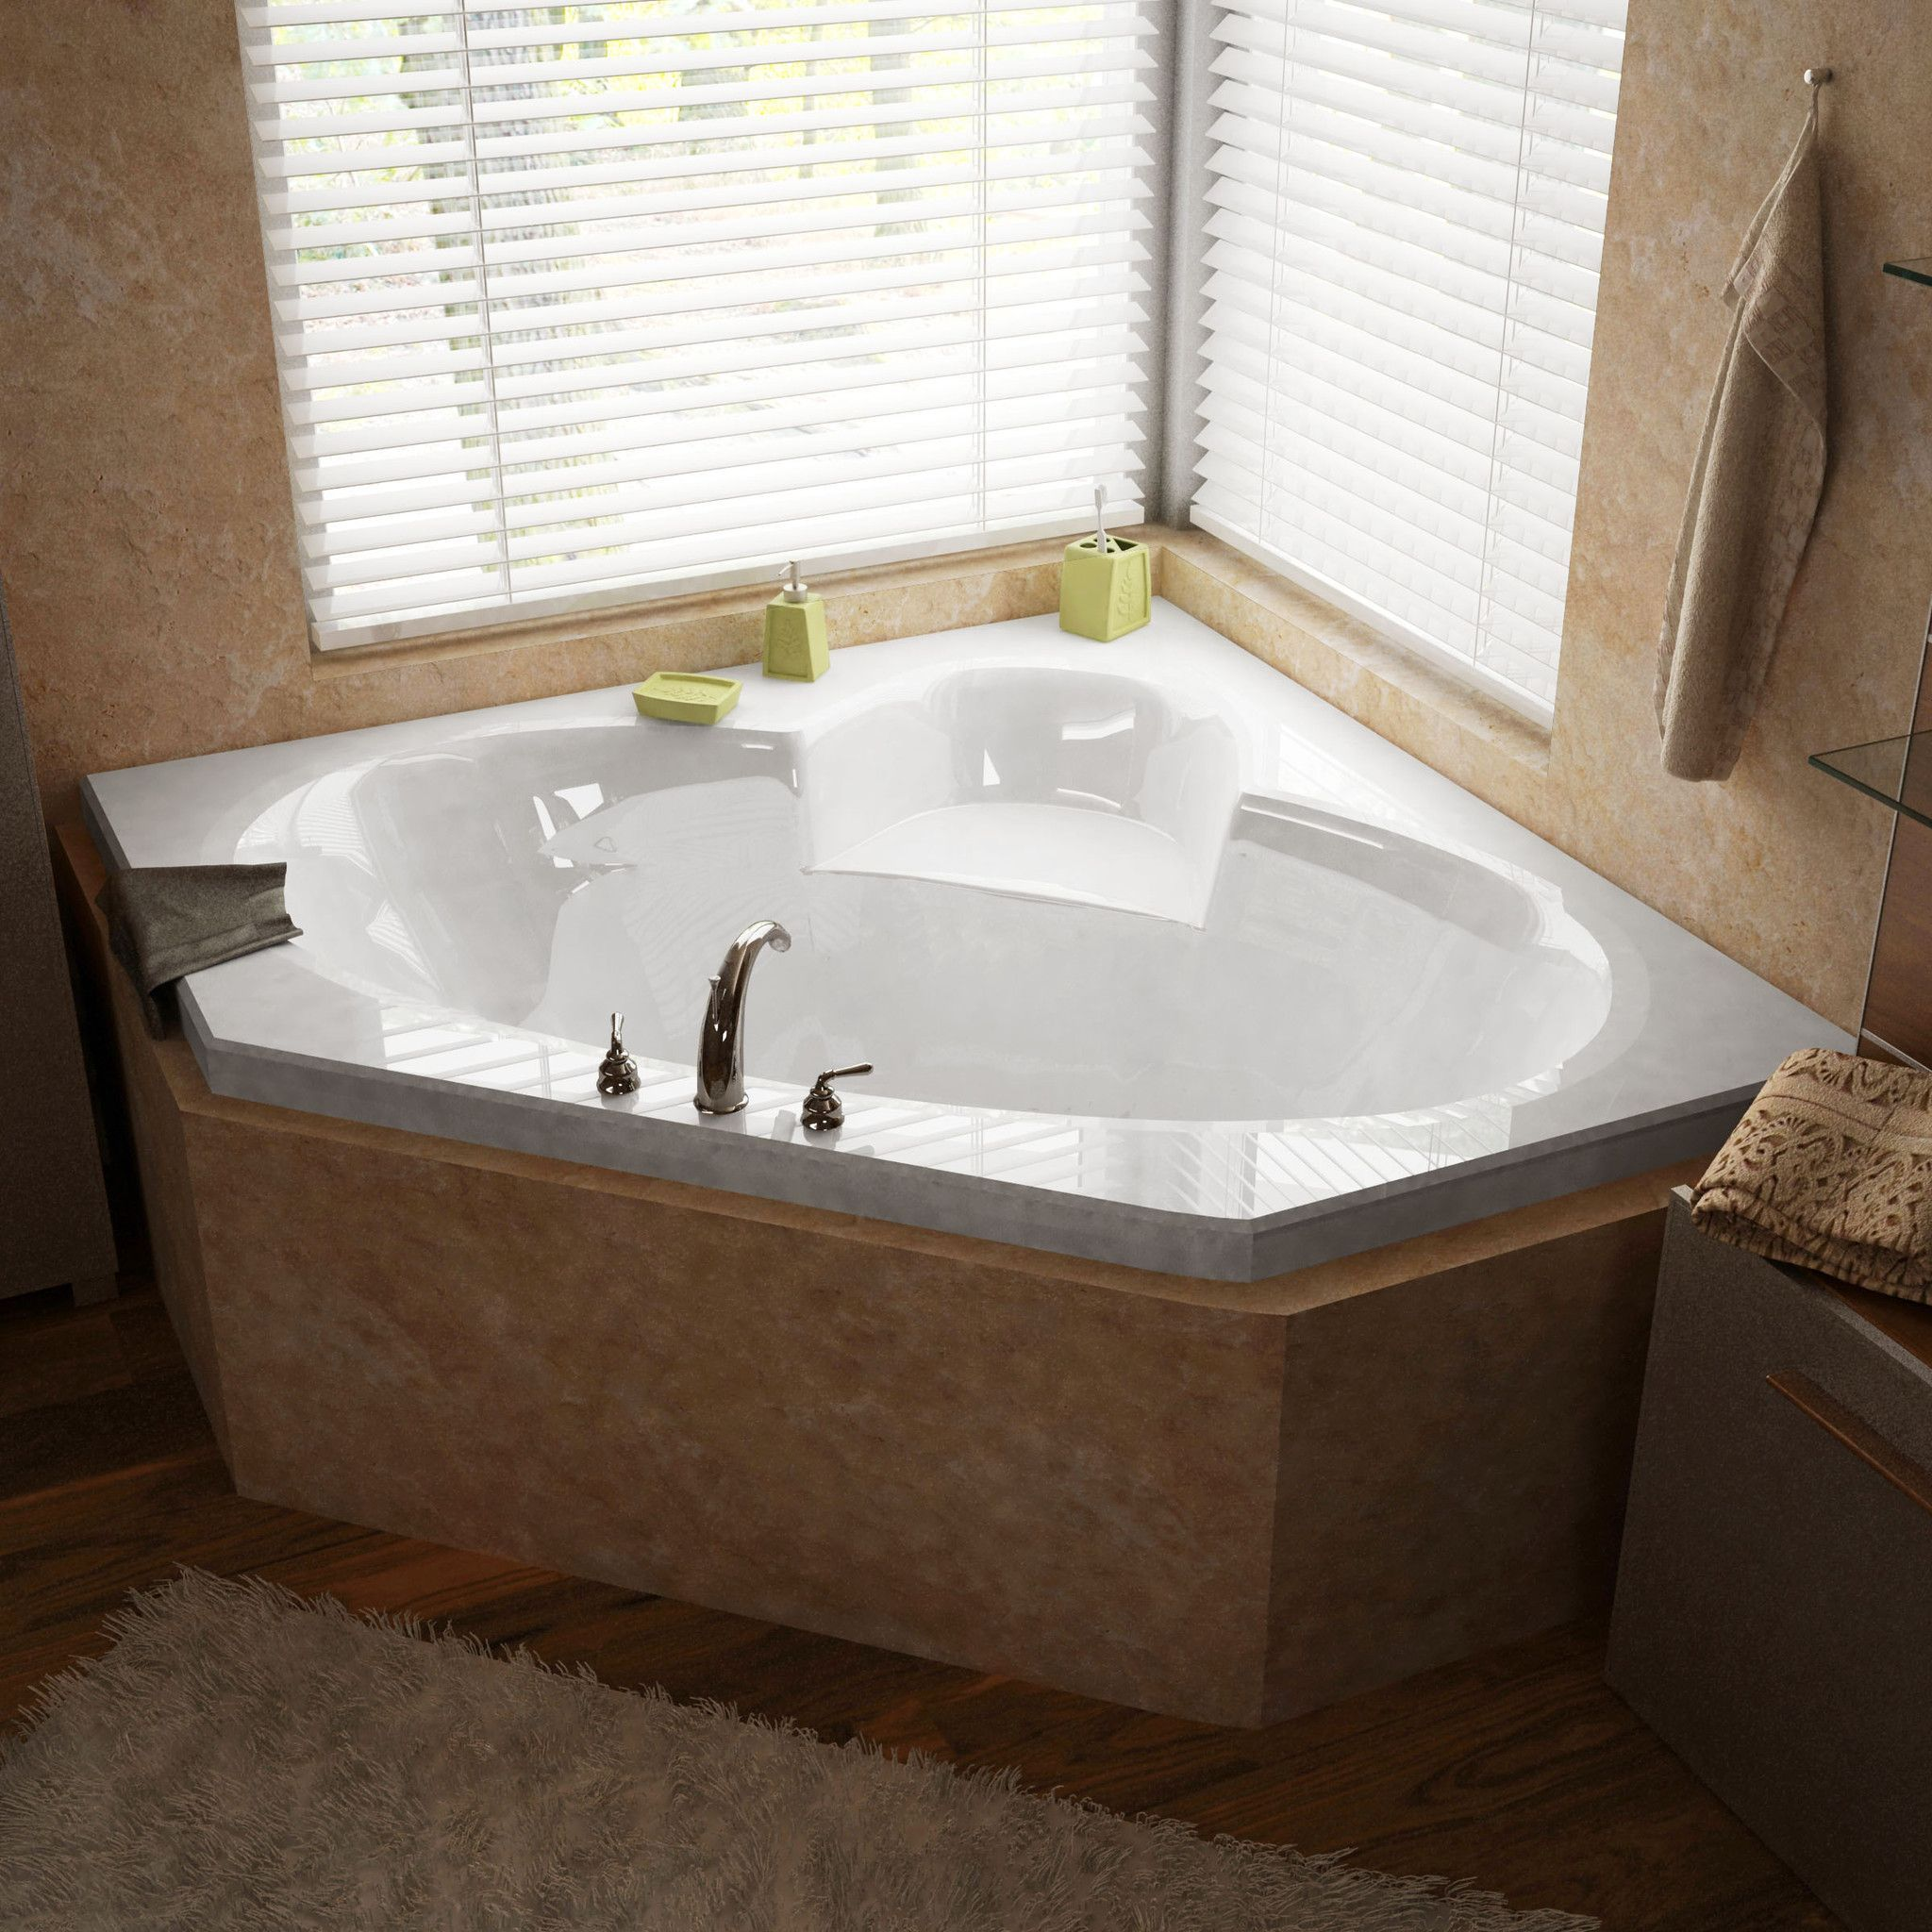 Product Features: - 58 in L x 58 in W x 23 in H - Soaking bathtub ...